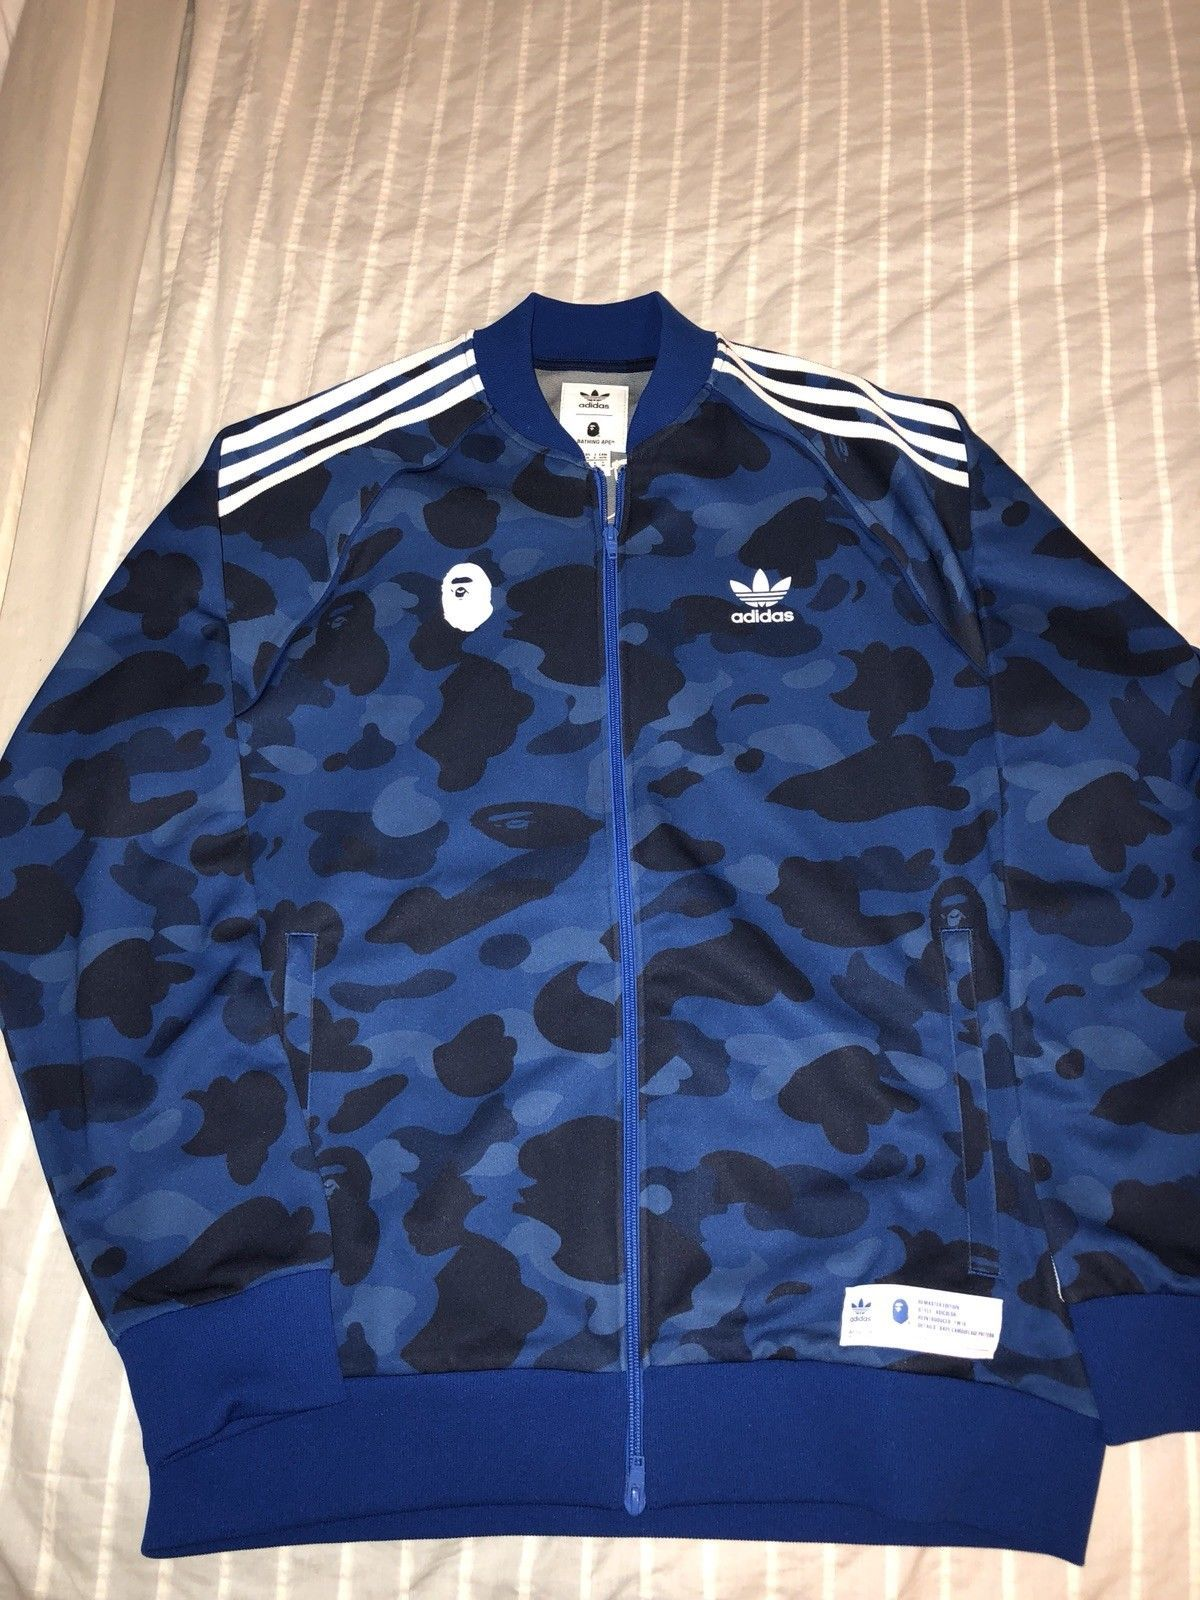 fcb87220b8a07 Details about Adidas x A Bathing Ape Bape Men's Firebird Jacket ...